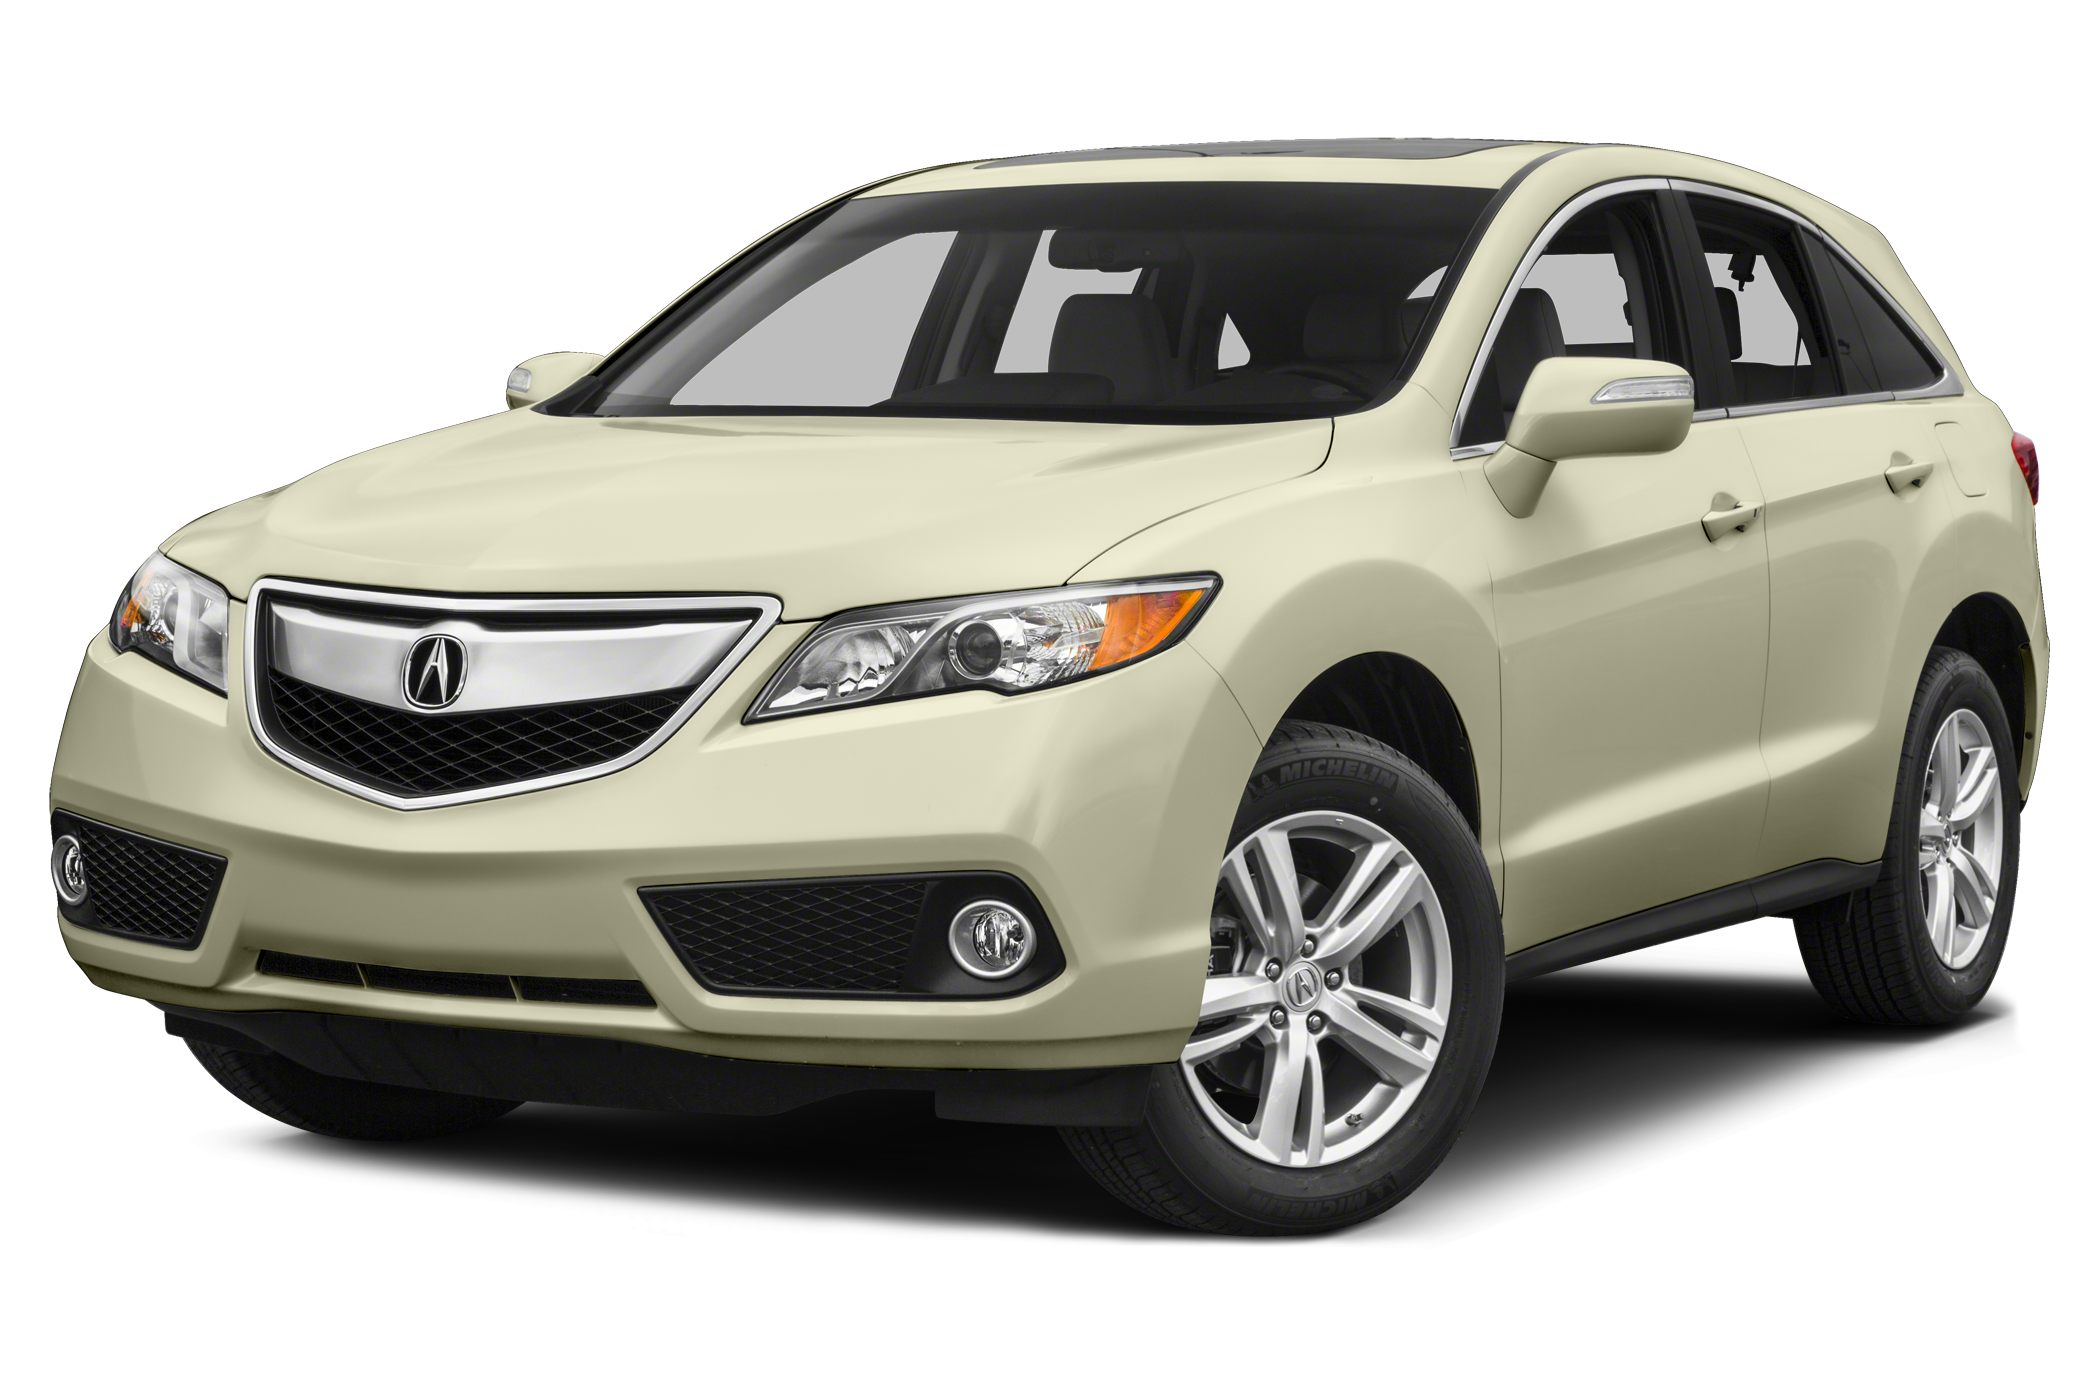 2015 Acura RDX Technology Miles 2Color Graphite Luster Metallic Stock A026992 VIN 5J8TB4H59FL